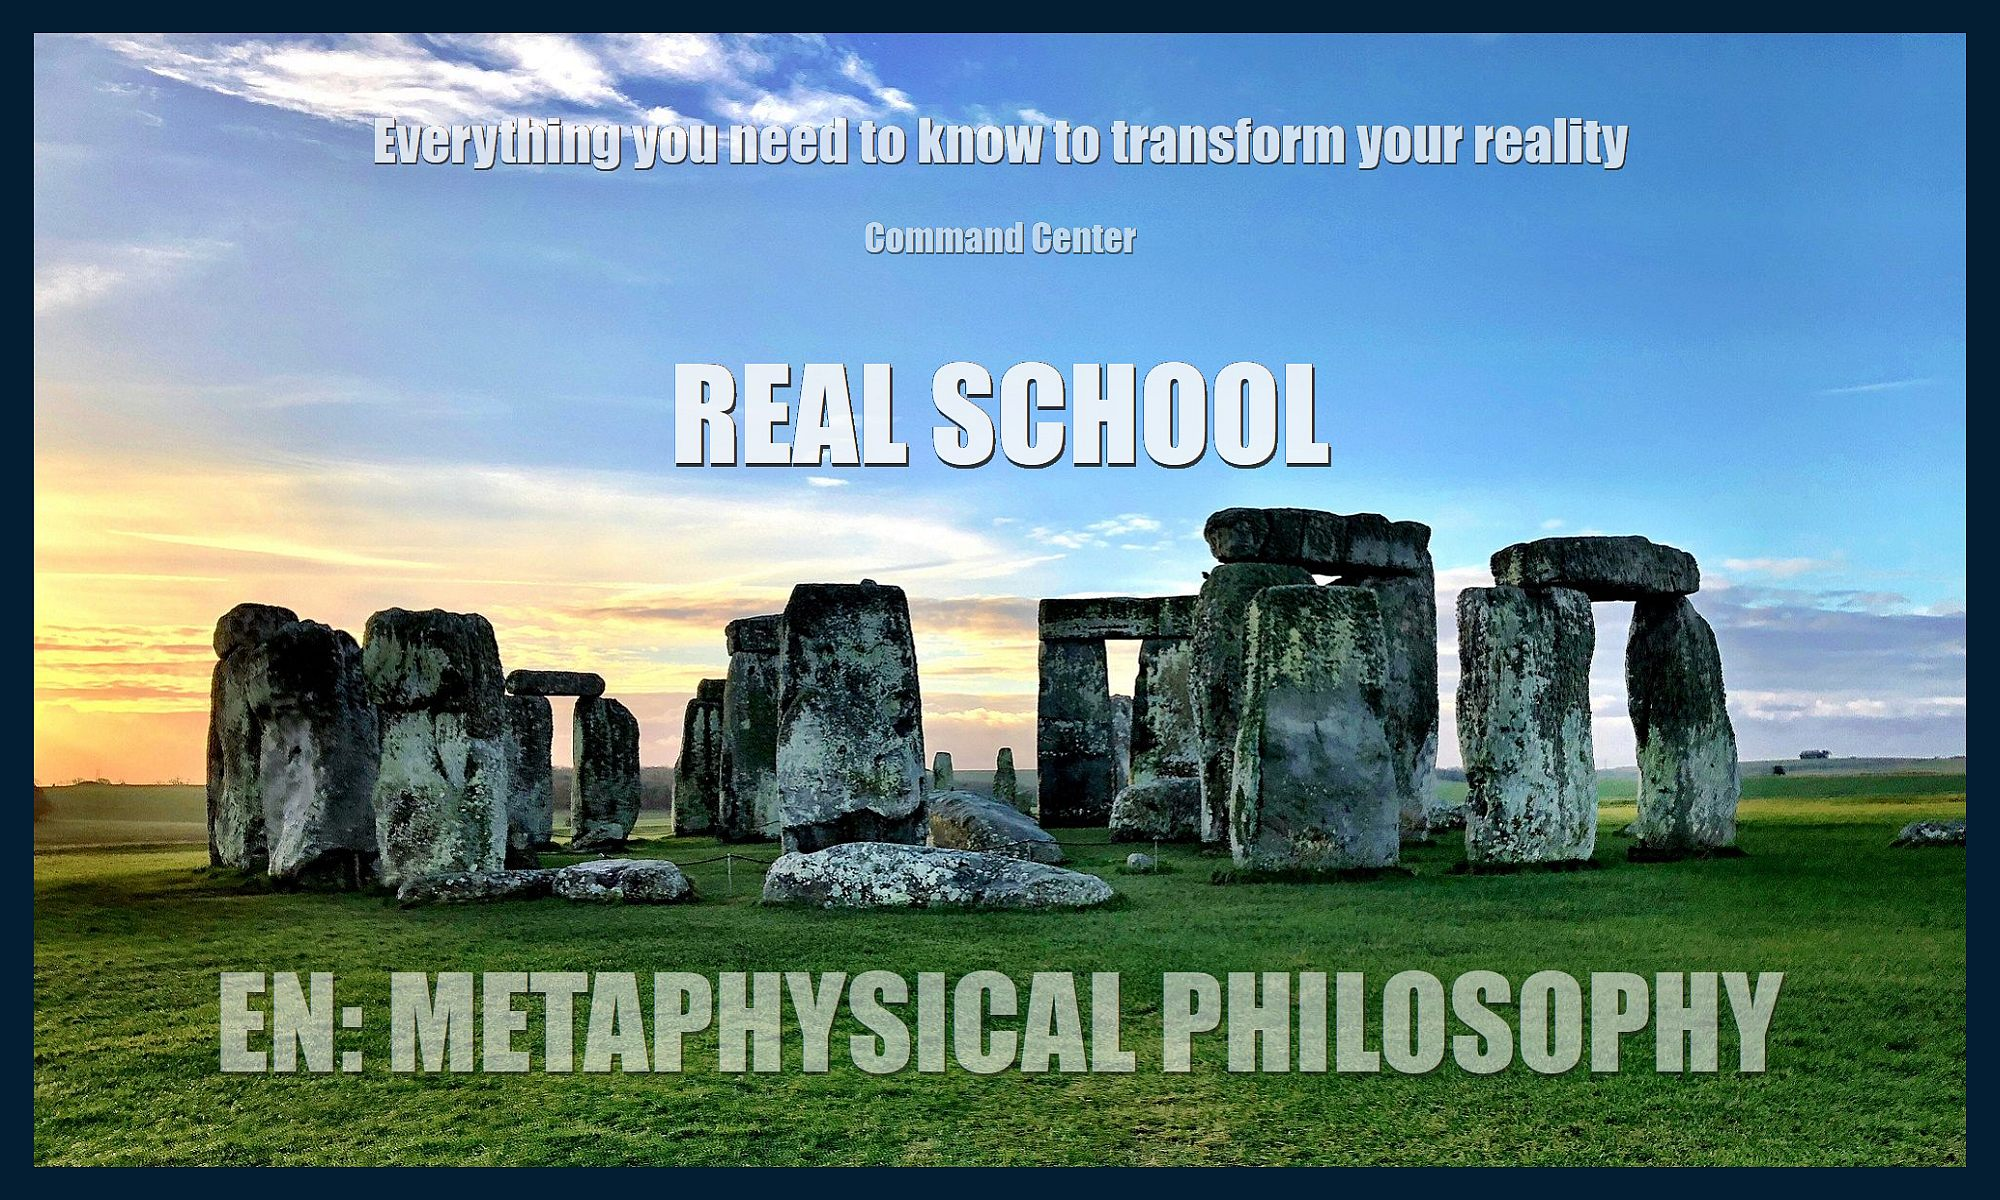 Metaphysical-philosophy-Conscious-Creation-Consciousness-Science-facts-c1-2000